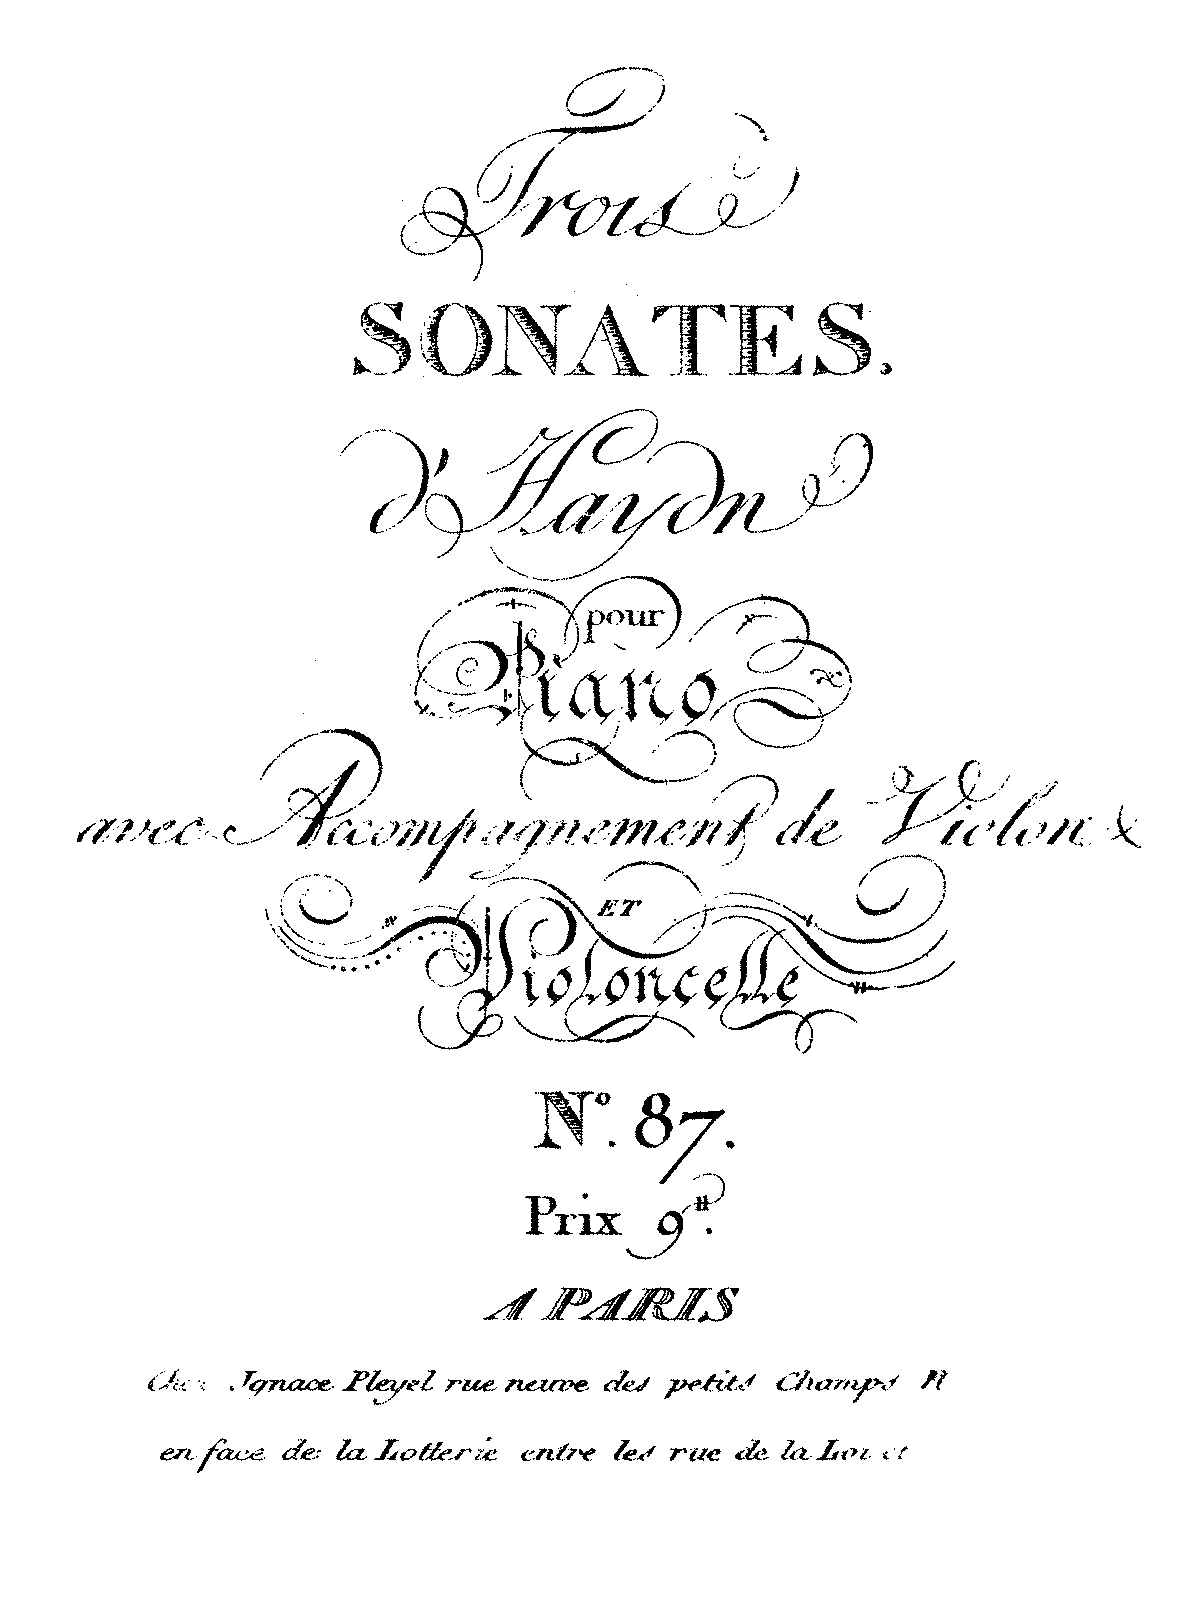 PMLP118678-Haydn - 3 Sonatas for Piano Violin and Cello No87 piano part.pdf